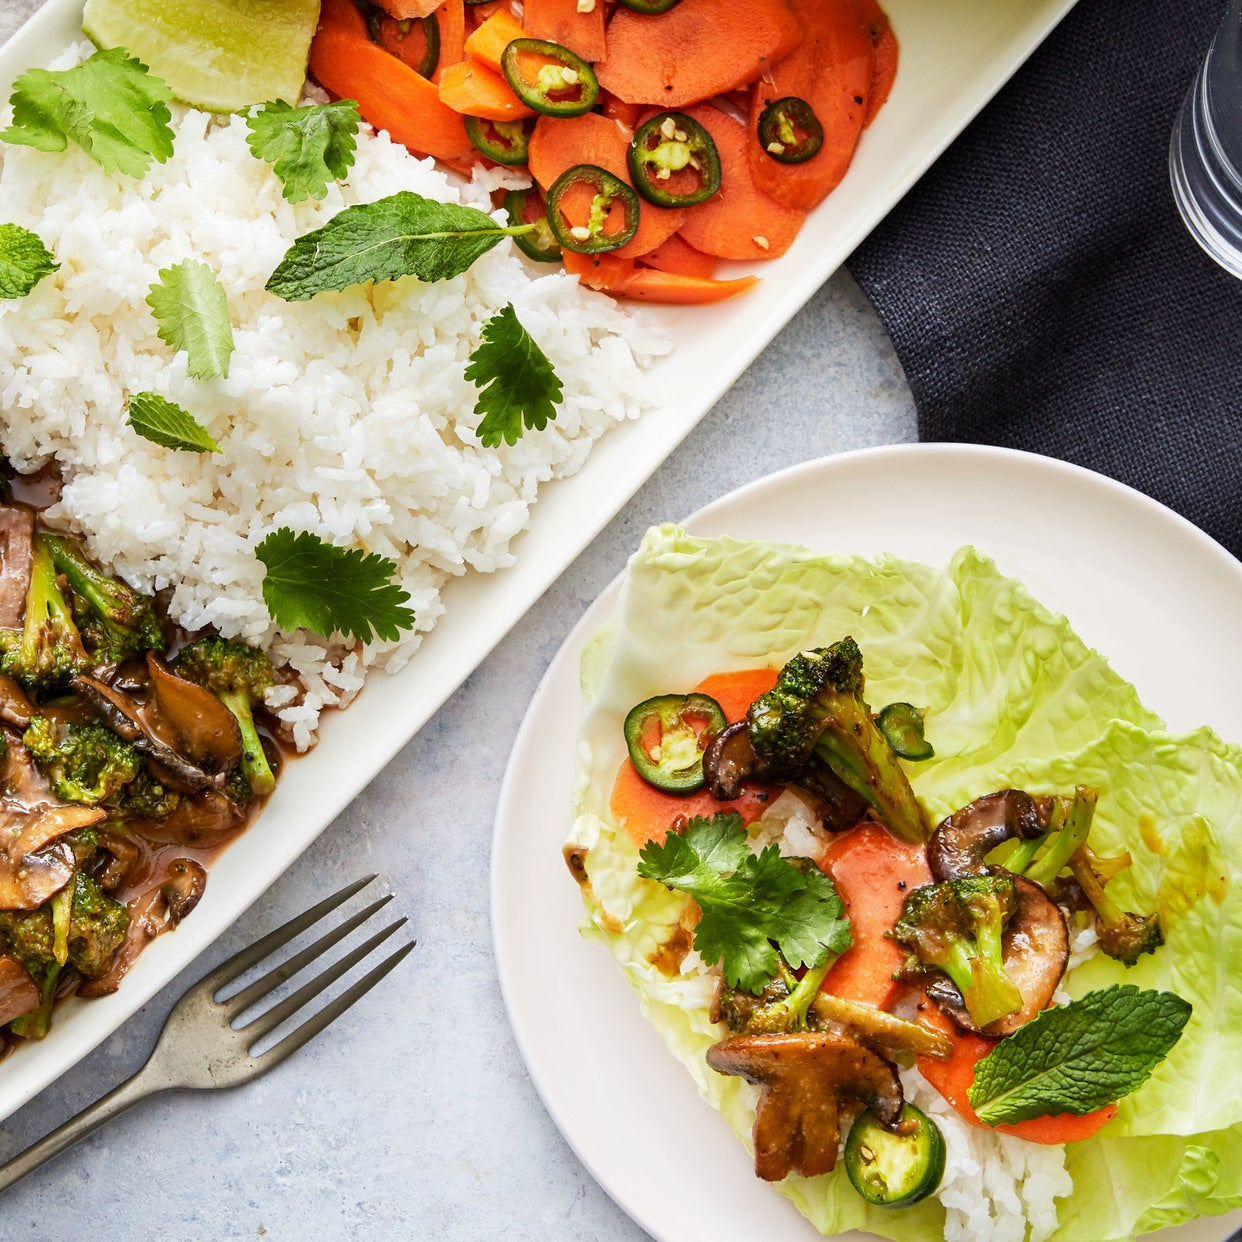 Laotian Vegetable Laab with Soy-Glazed Mushrooms & Coconut Rice